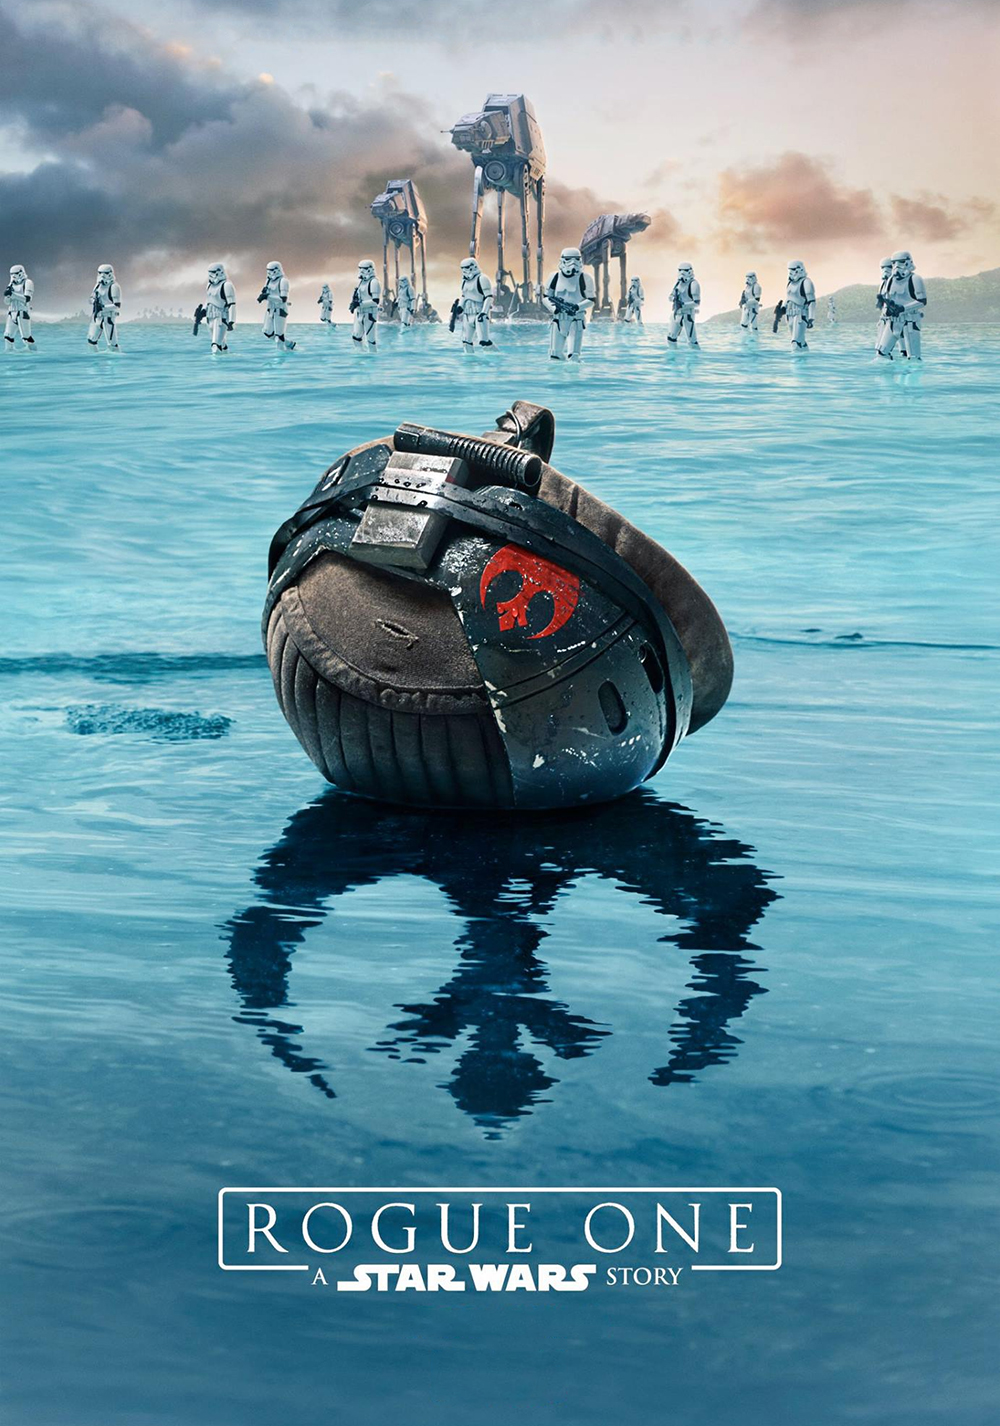 Łotr 1. Gwiezdne Wojny Historie / Rogue One: A Star Wars Story (2016)[BRRip 1080p / PLSUBBED]